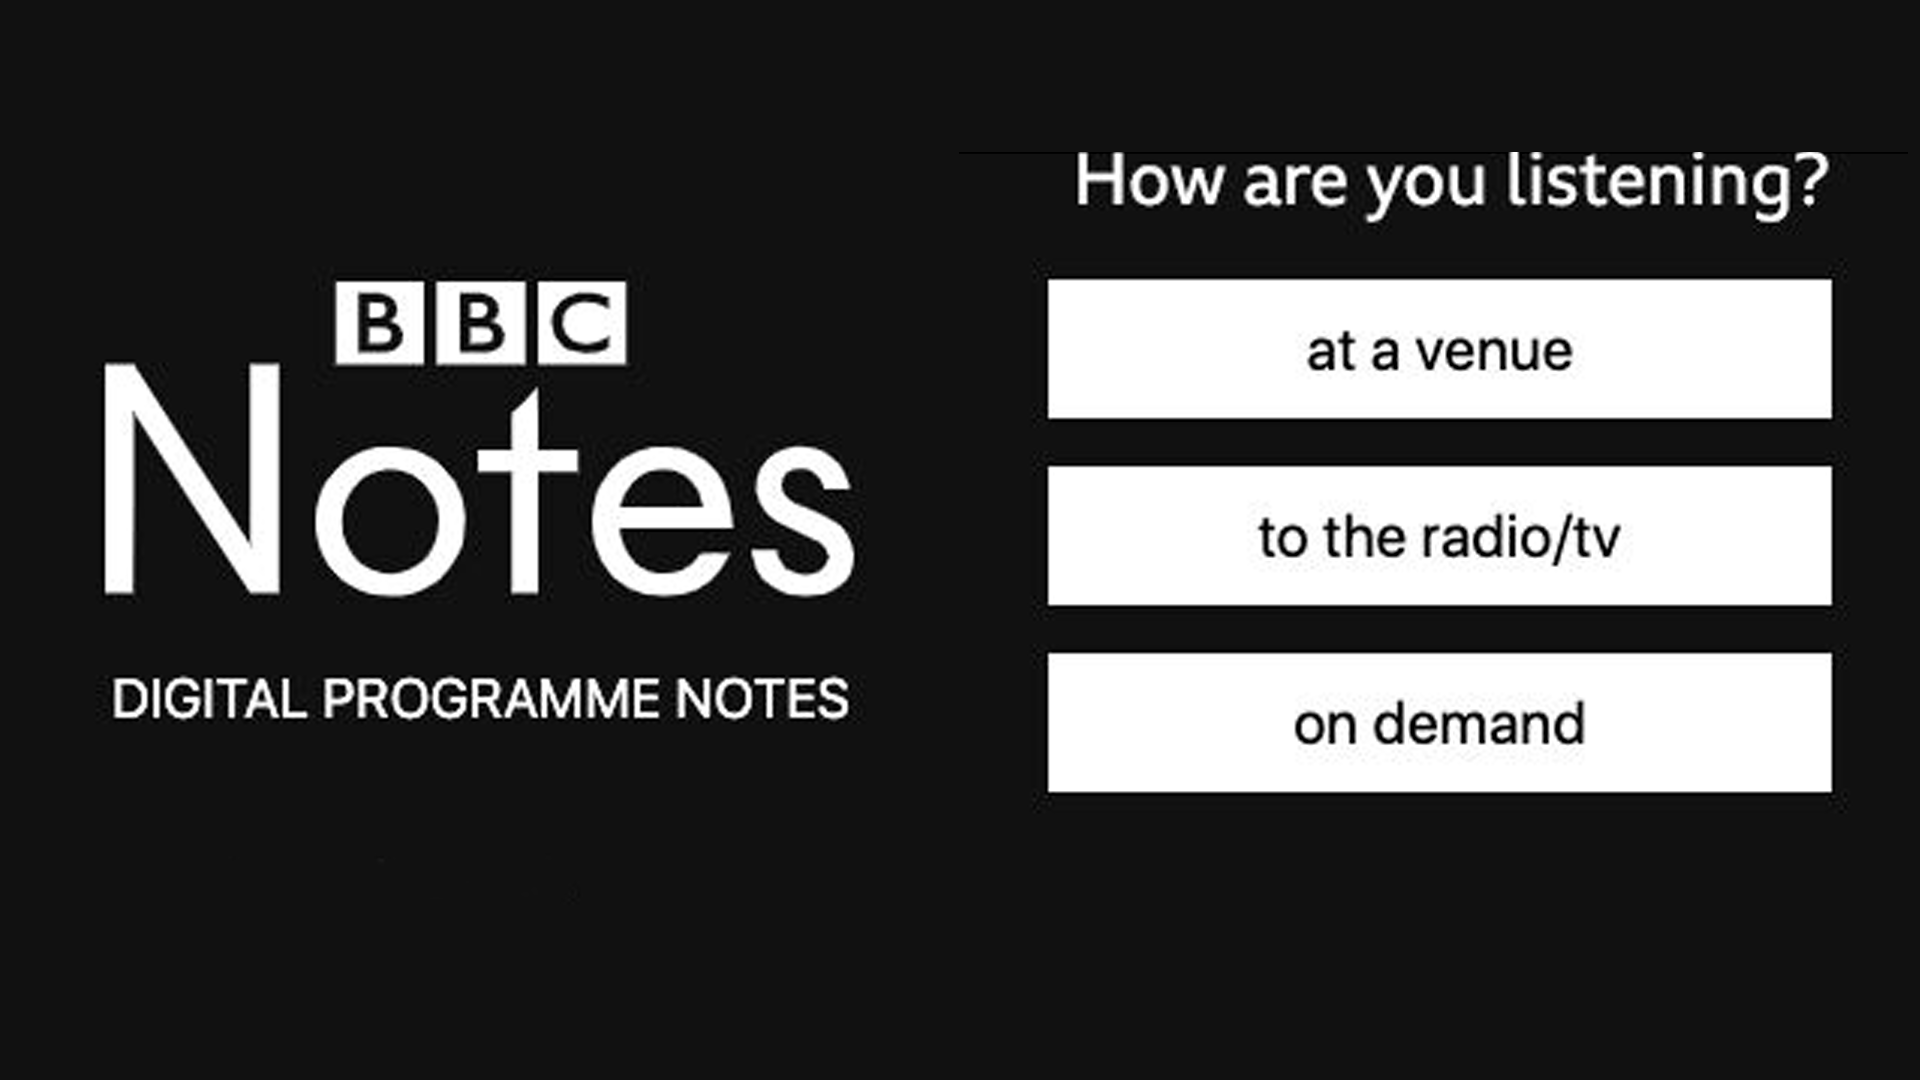 A screenshot from the BBC Notes app asking users to select where they are listening to the programme - at the venue, on the radio, or on demand.